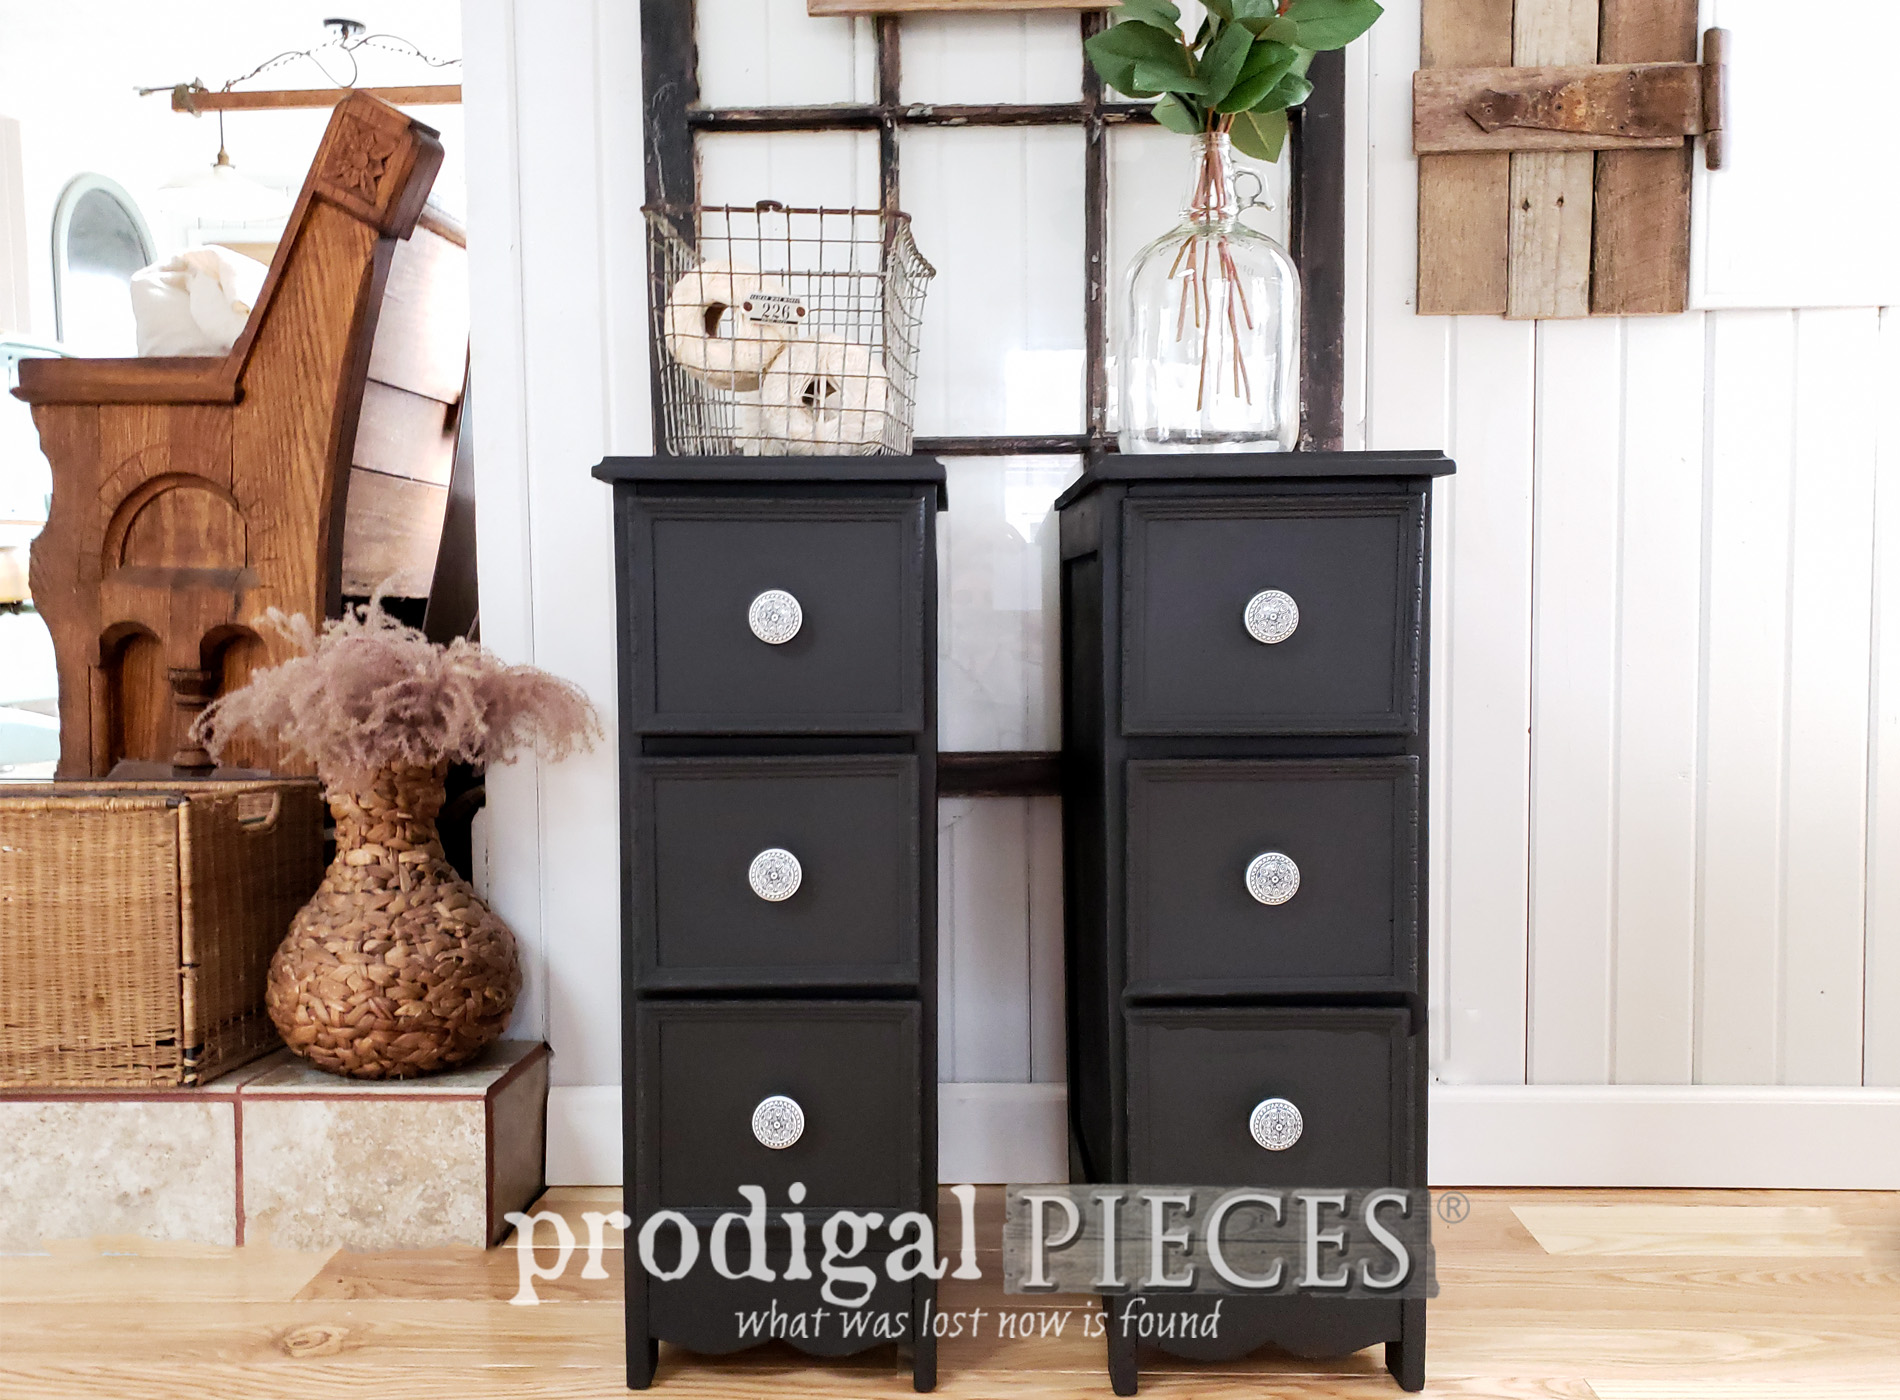 Featured Upcycled Desk into Nightstands with Step-by-Step Video Tutorial by Larissa of Prodigal Pieces | prodigalpieces.com #prodigalpieces #diy #handmade #vintage #furniture #home #shopping #homedecor #homedecorideas